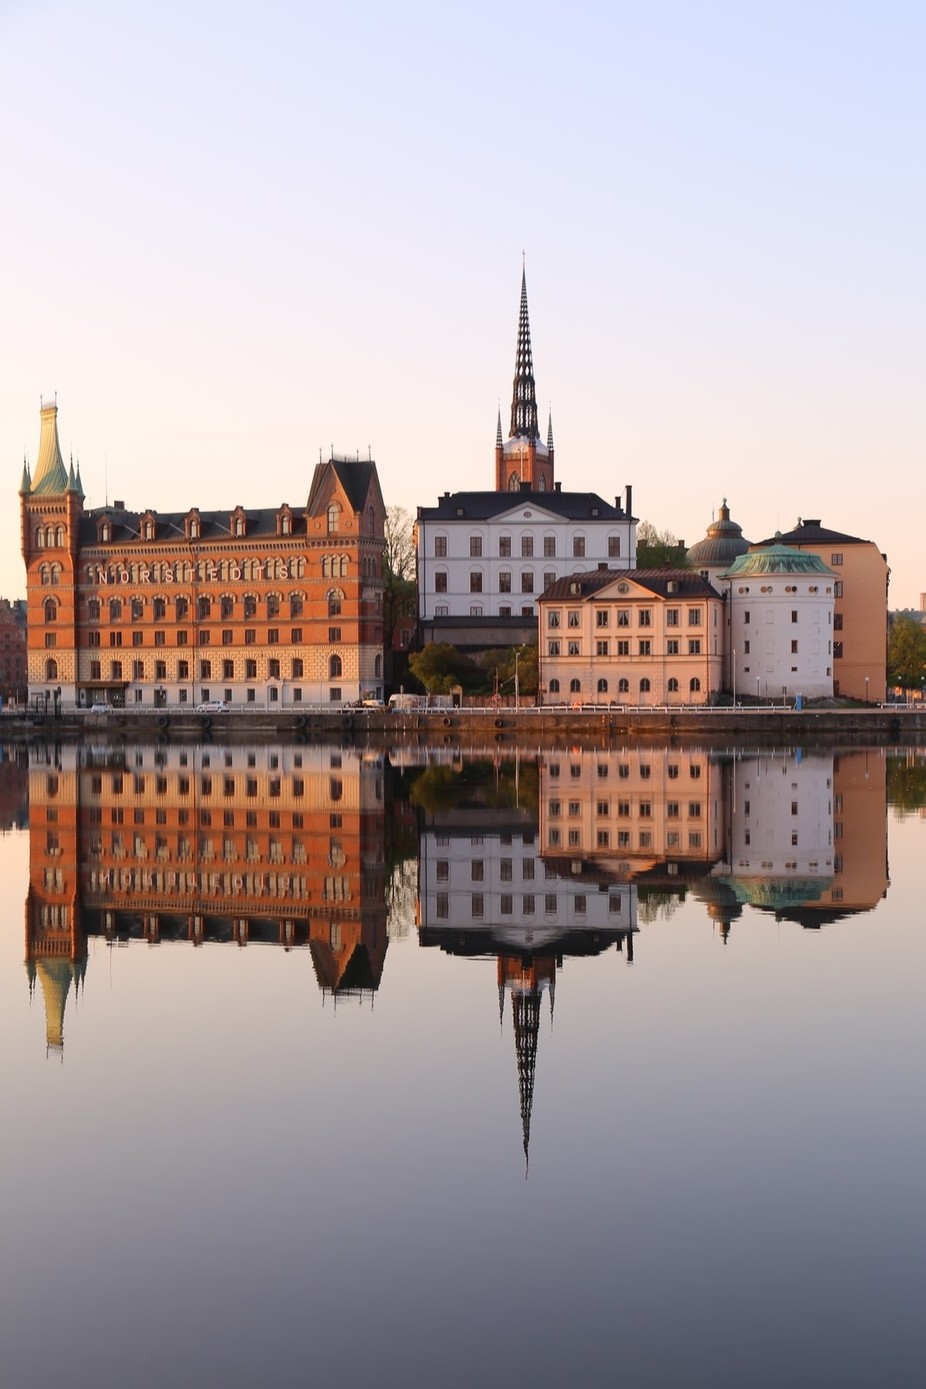 Stockholm - Riddarholmen early morning by Robert222 - Europe Photo Contest